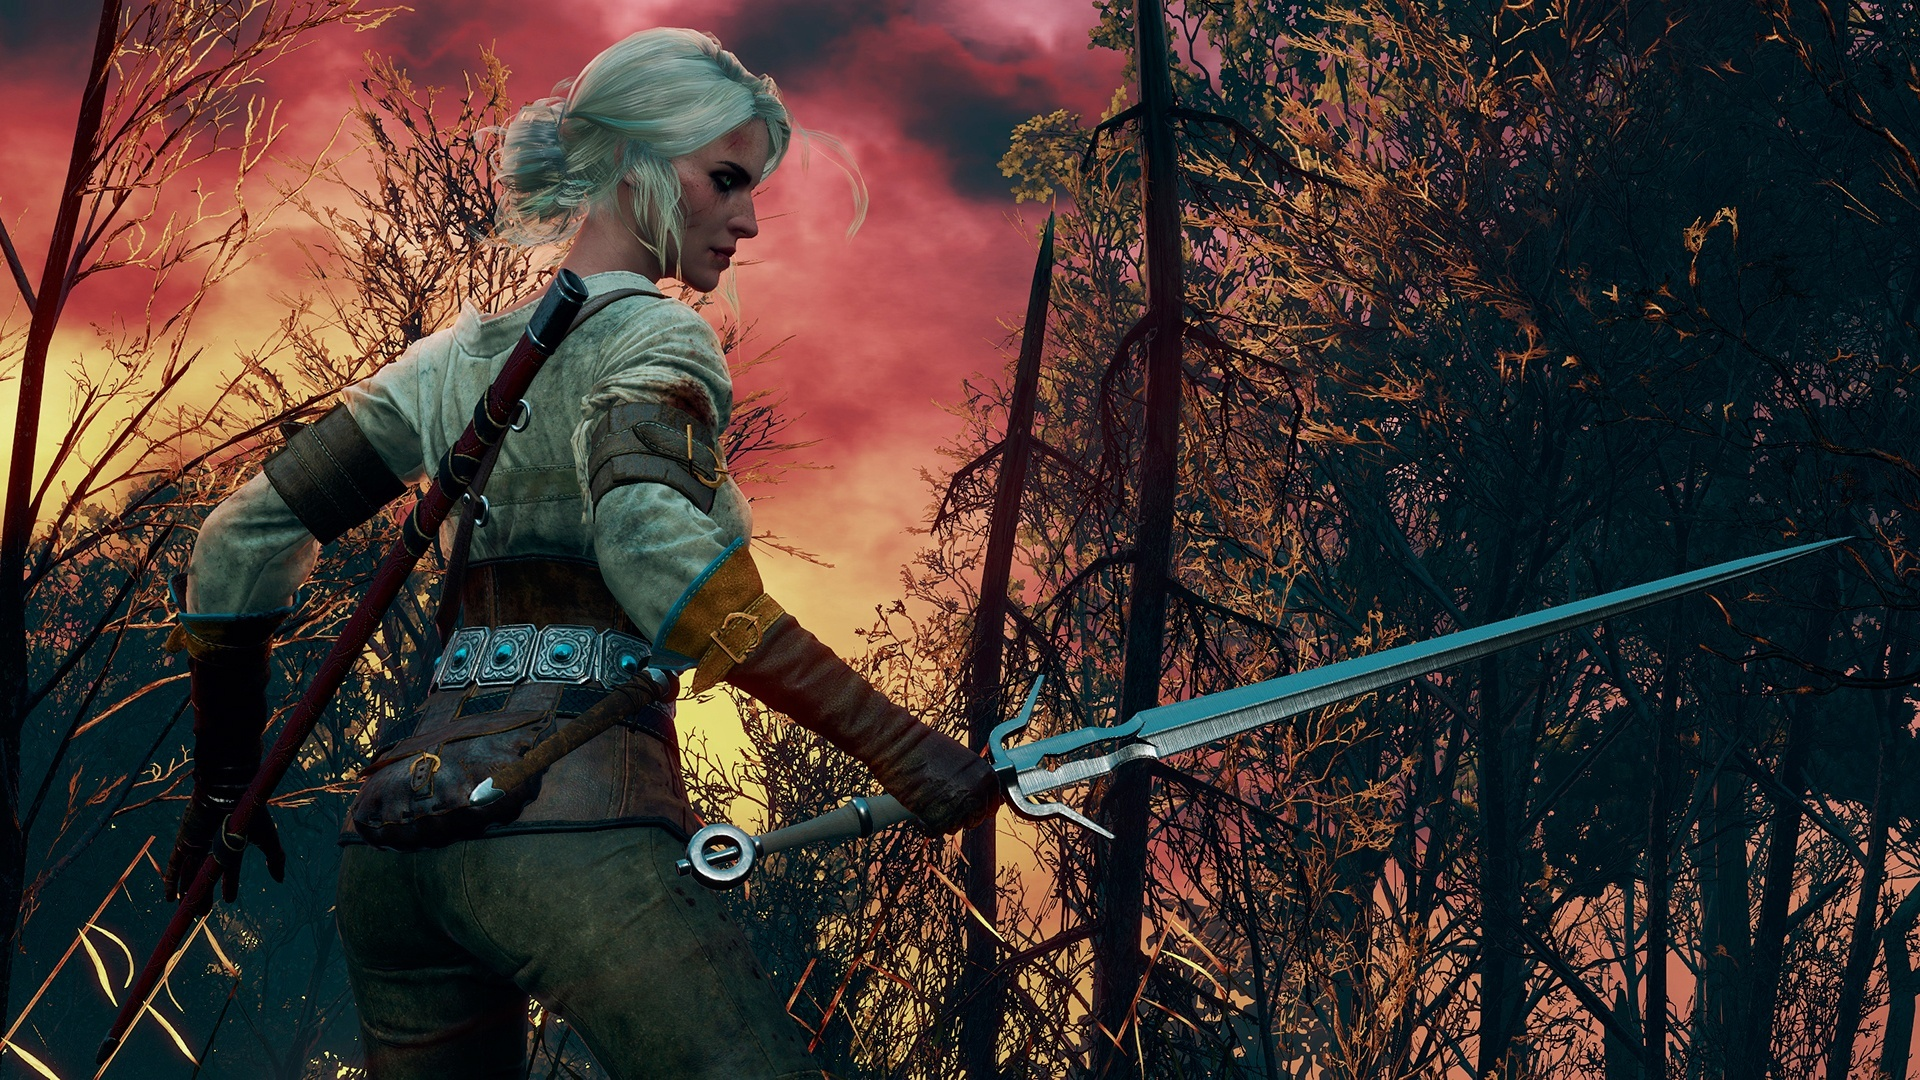 Ciri The Witcher 3 Game Wallpapers 1920x1080 1167958